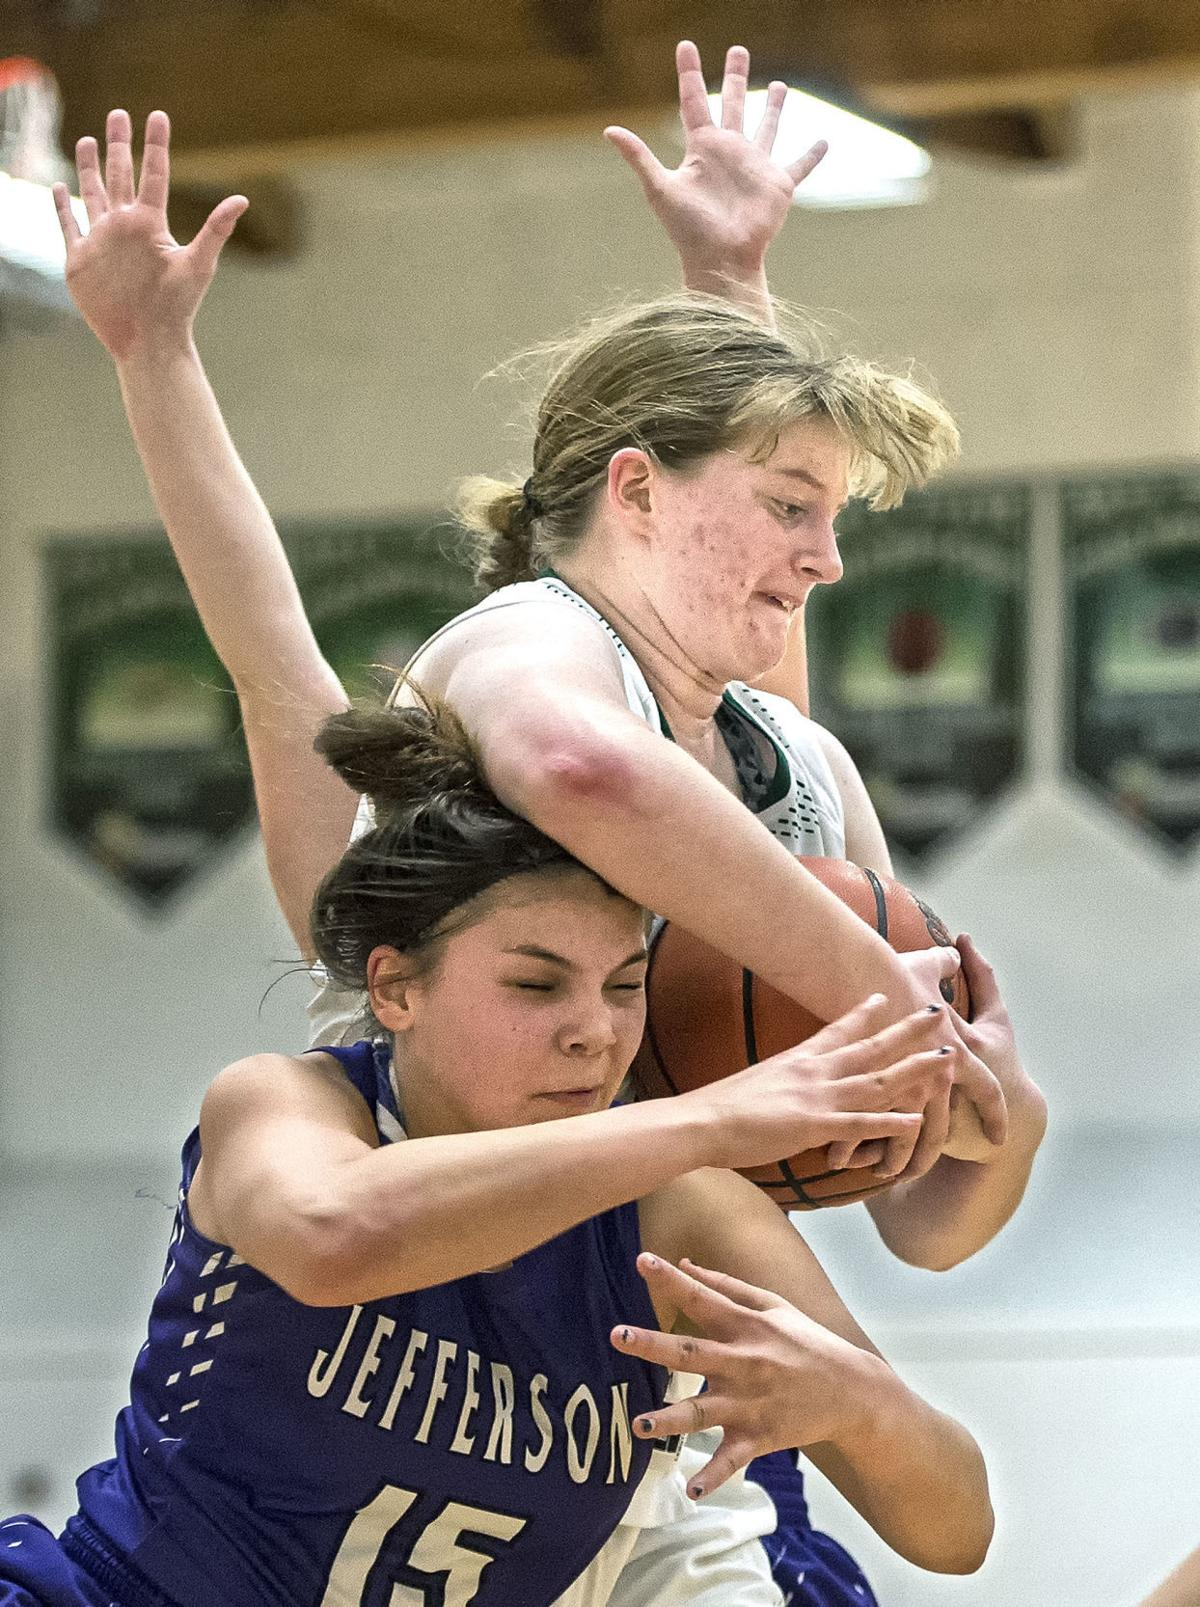 Rainier-Jefferson girls basketball